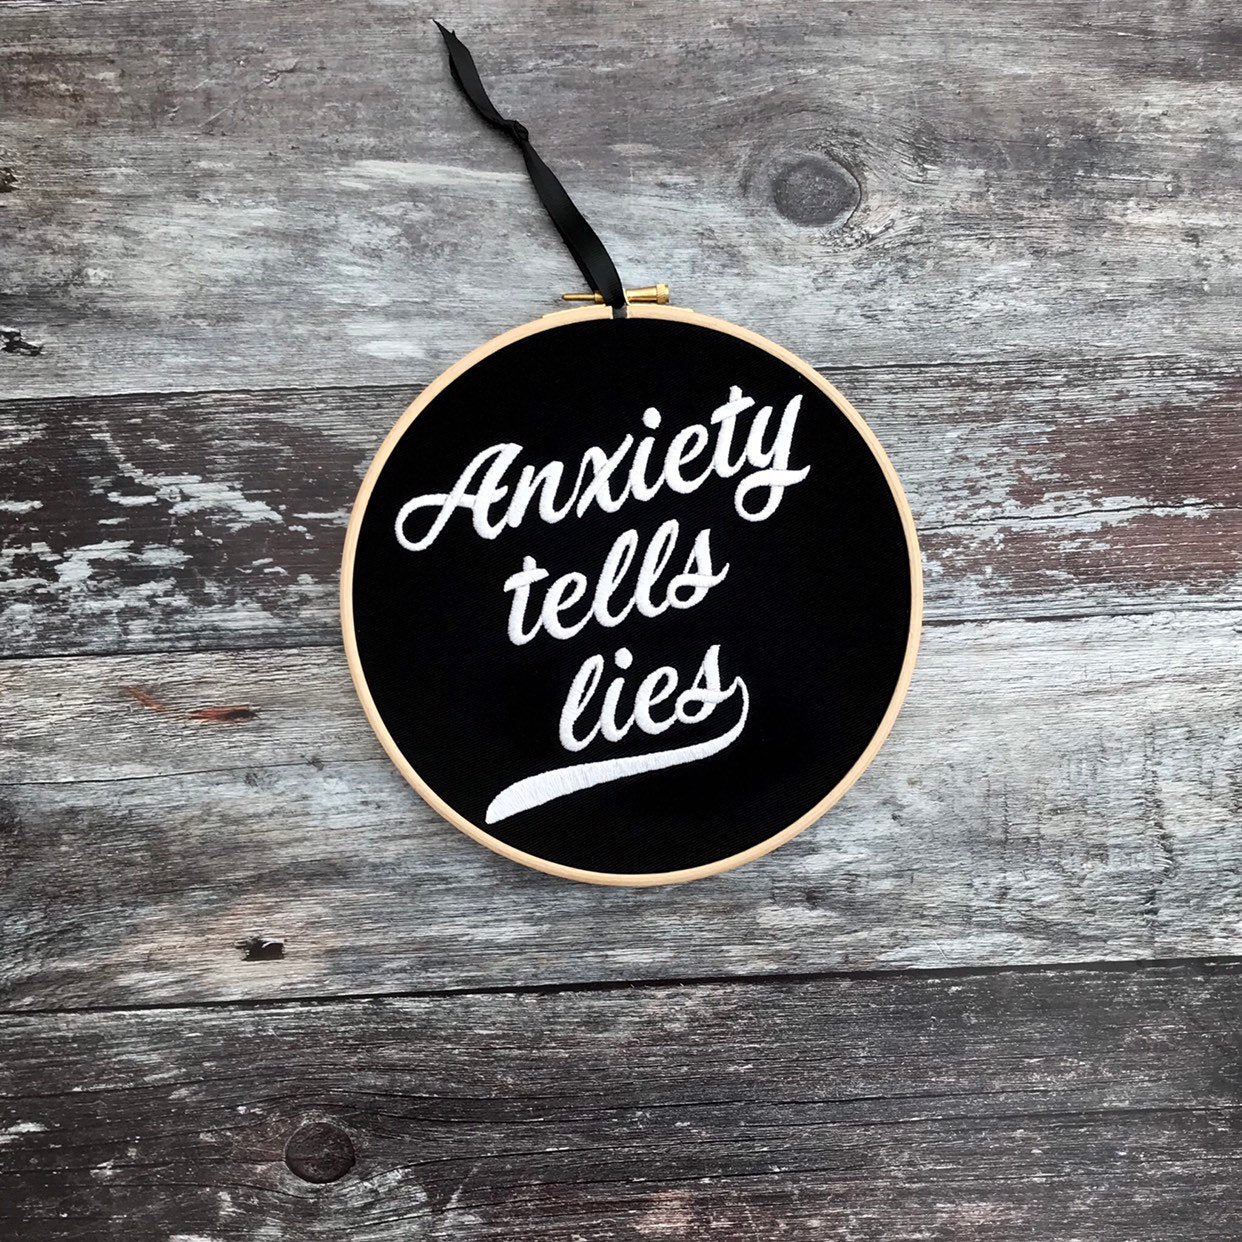 Anxiety tells lies, Embroidery hoop art